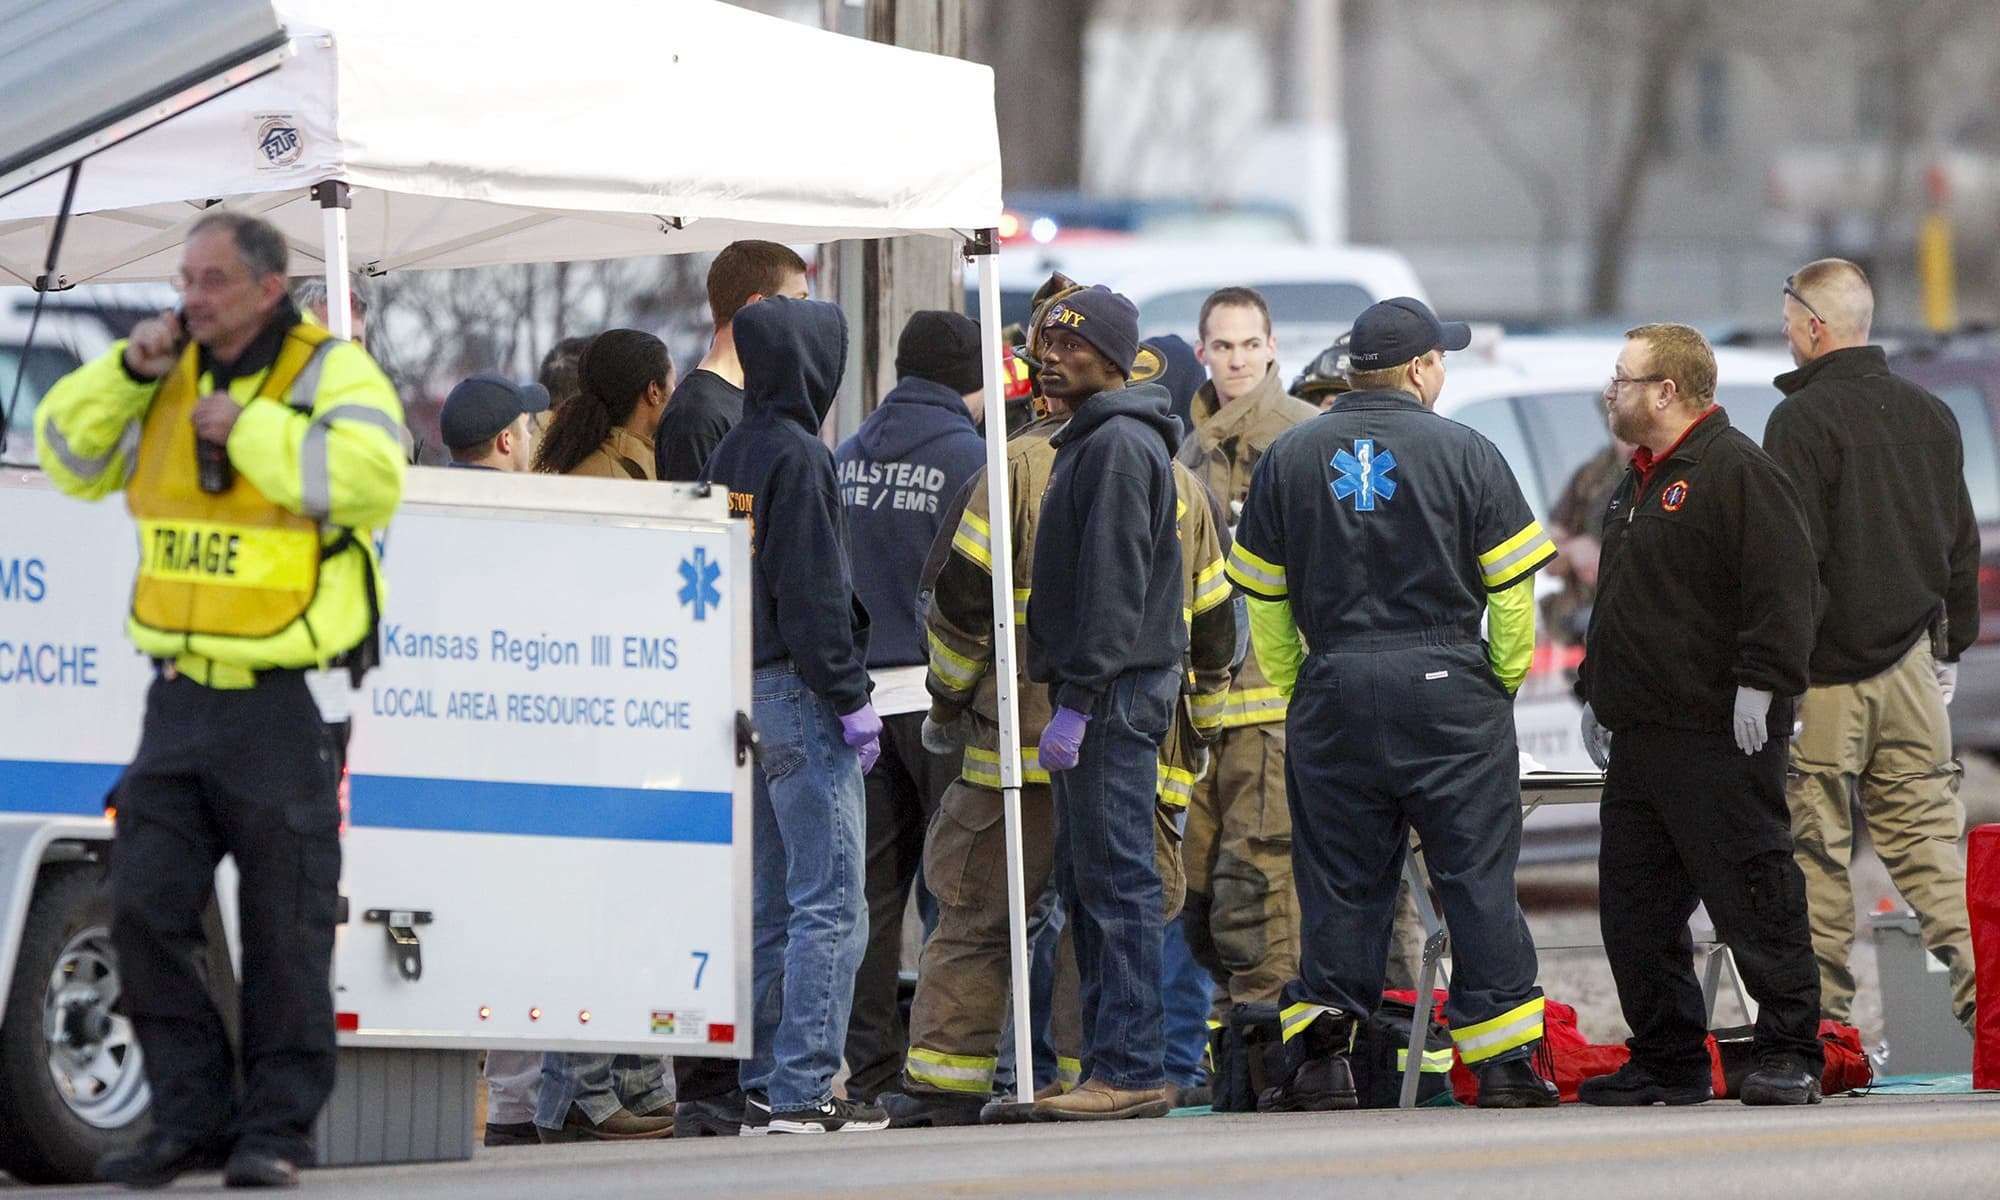 EMS workers gather a staging area by Excel Industries in Hesston, Kansas, Thursday, Feb 25, 2016.—AP